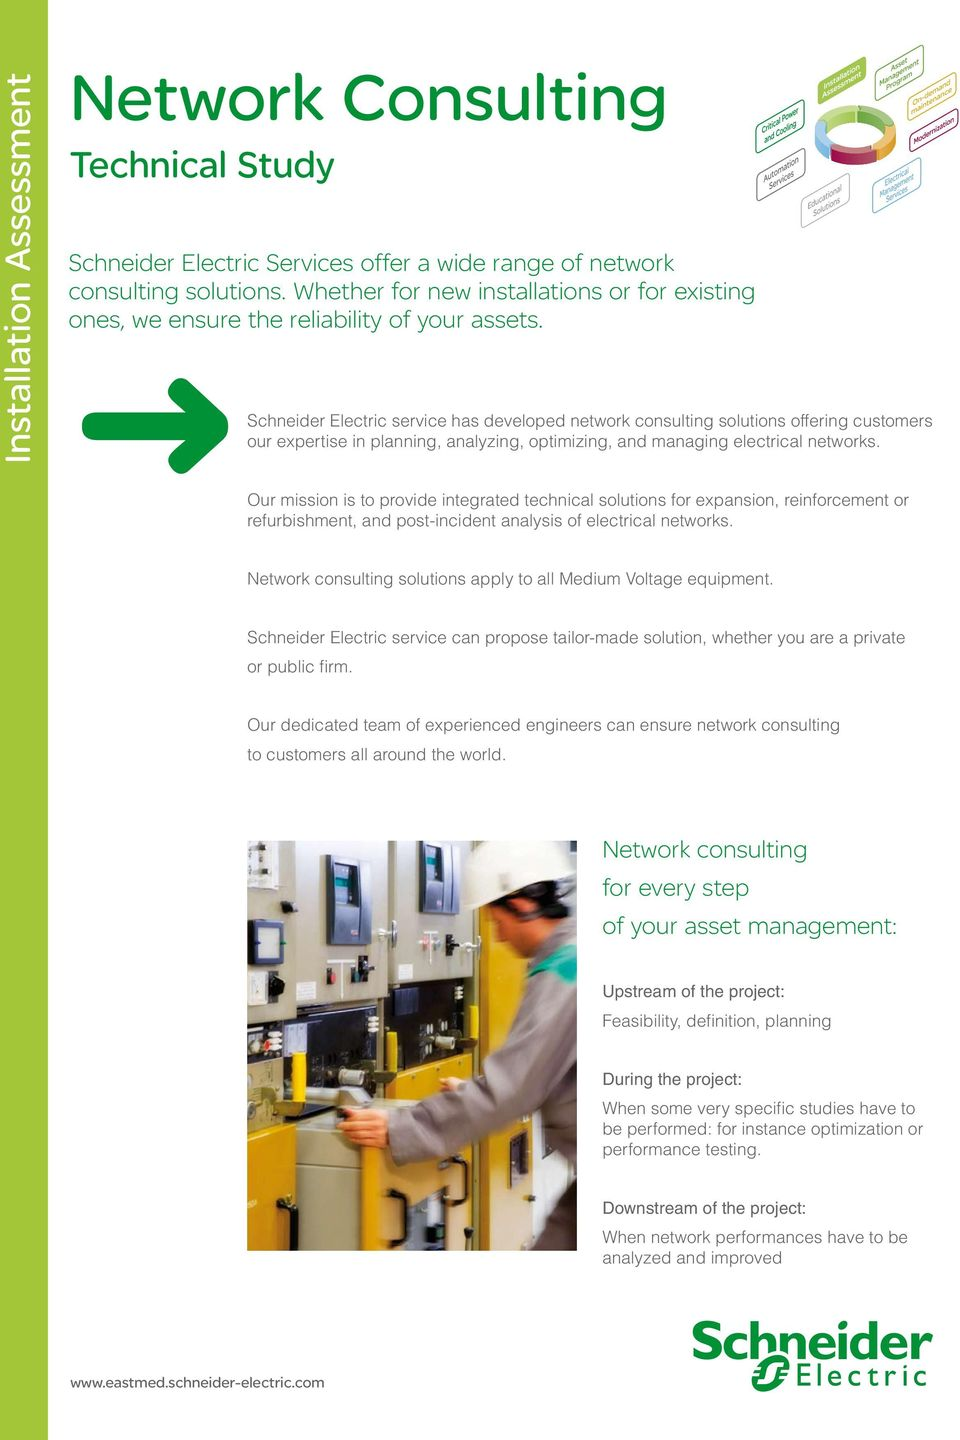 Schneider Electric service has developed network consulting solutions  offering customers our expertise in planning, analyzing